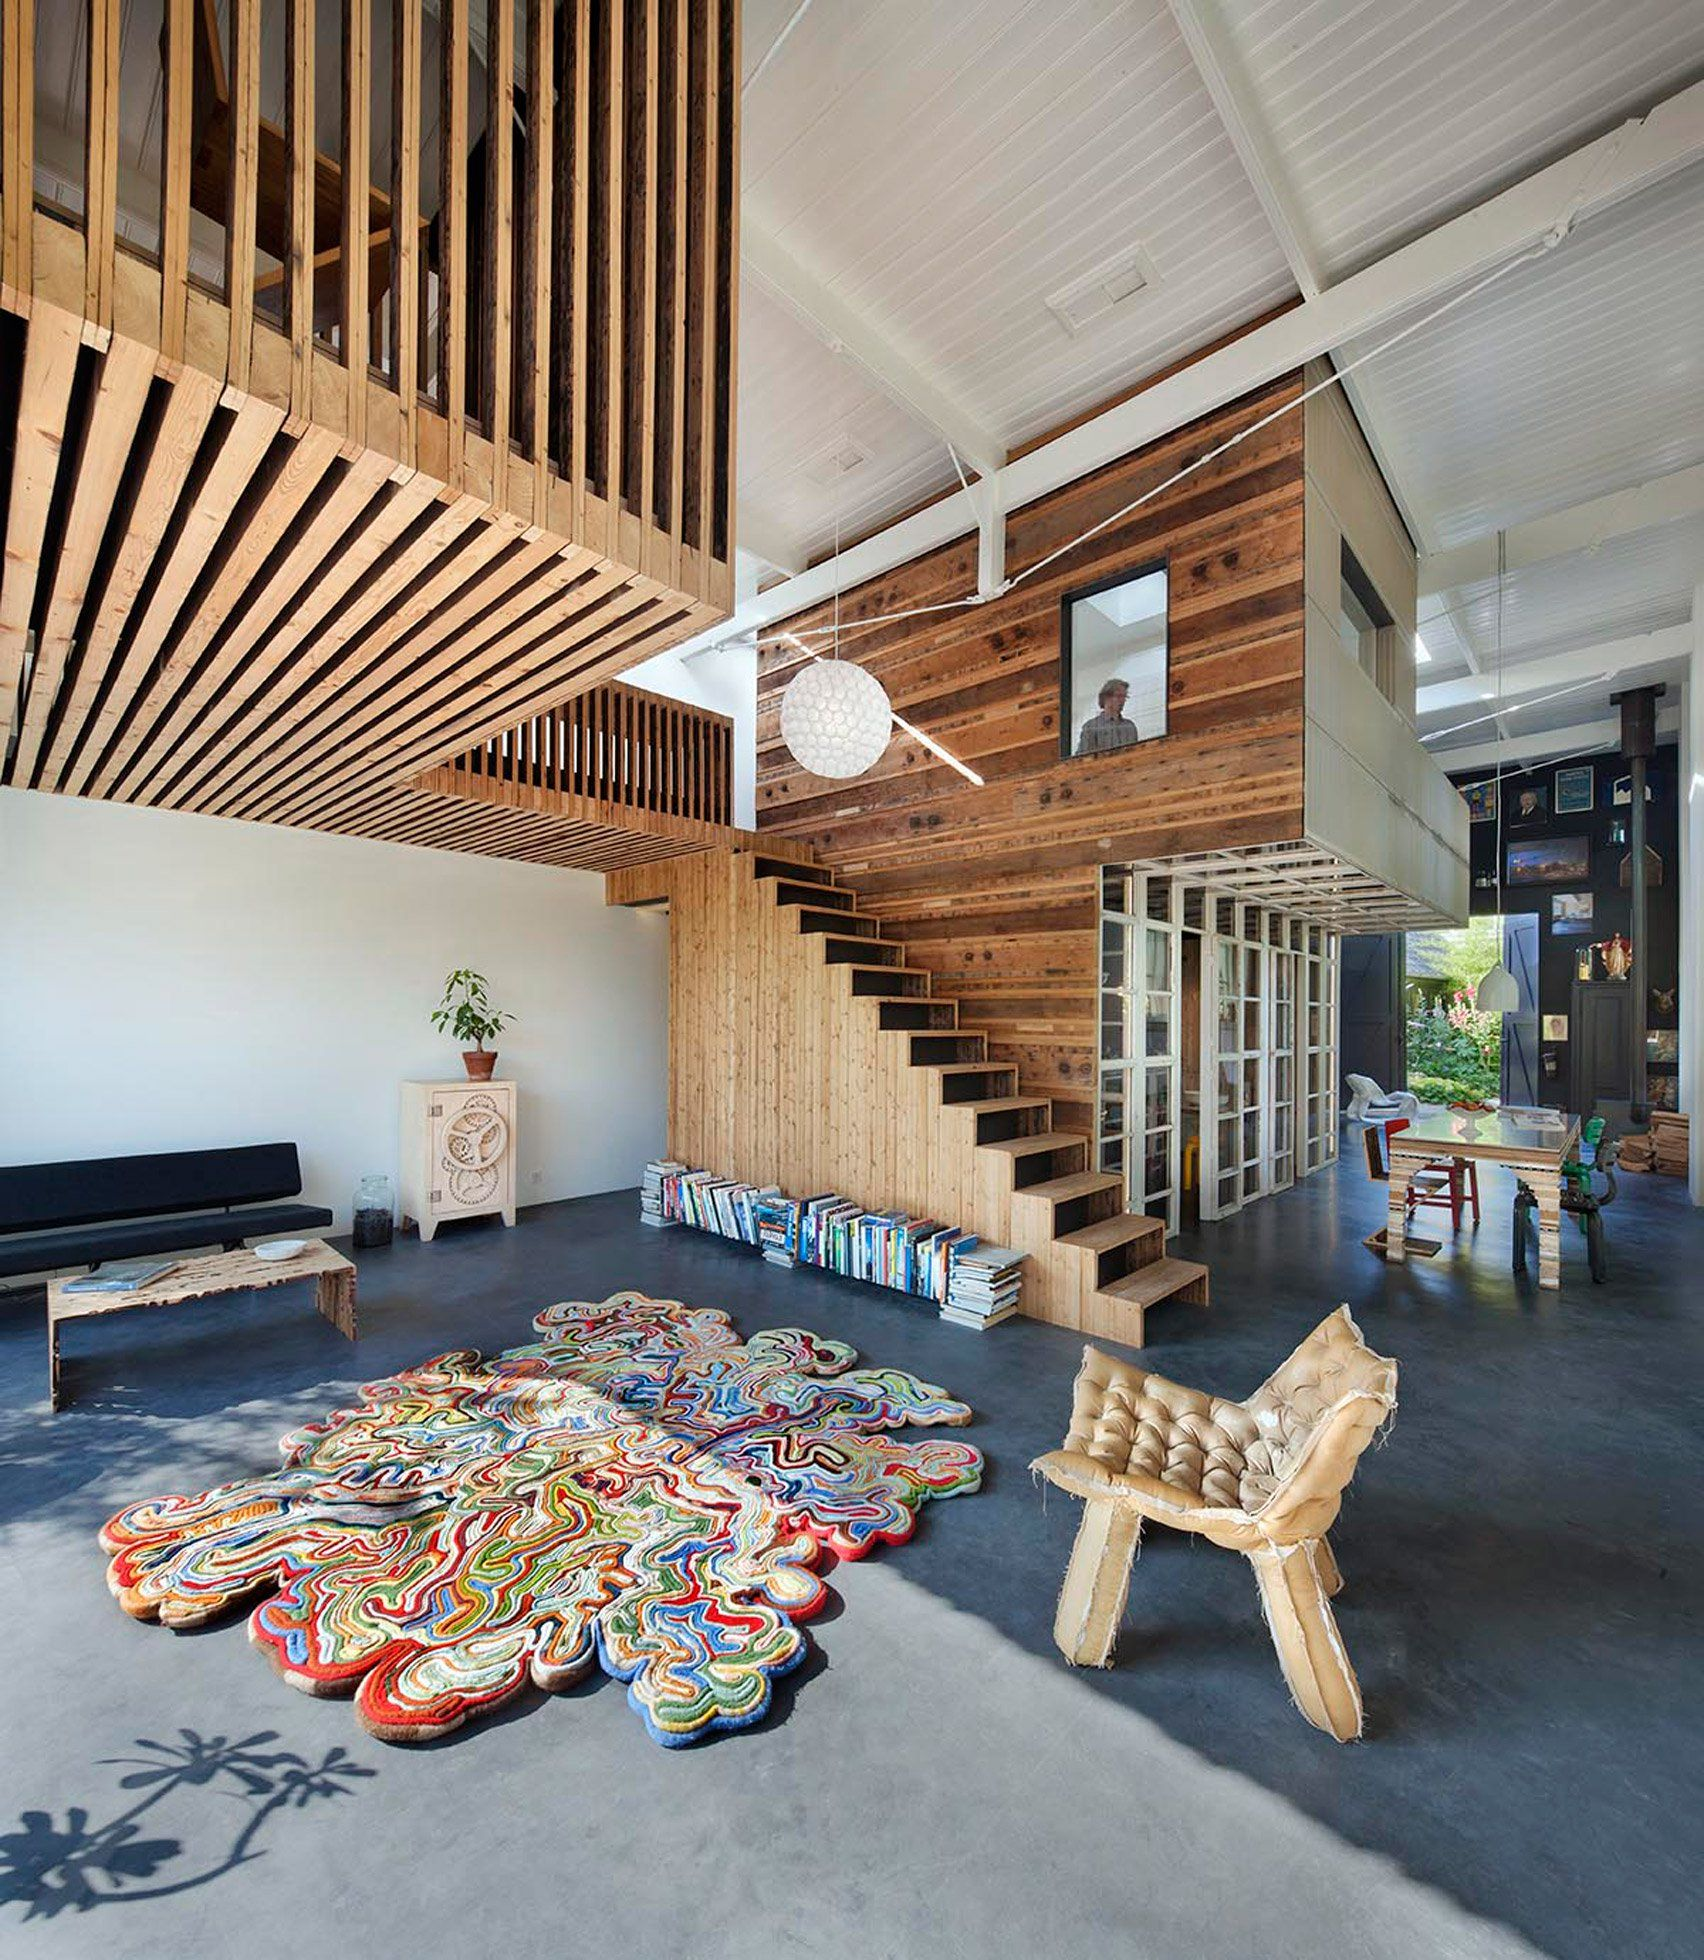 Rolf Bruggink Uses Salvaged Materials To Convert Coach House Into Home Part 96